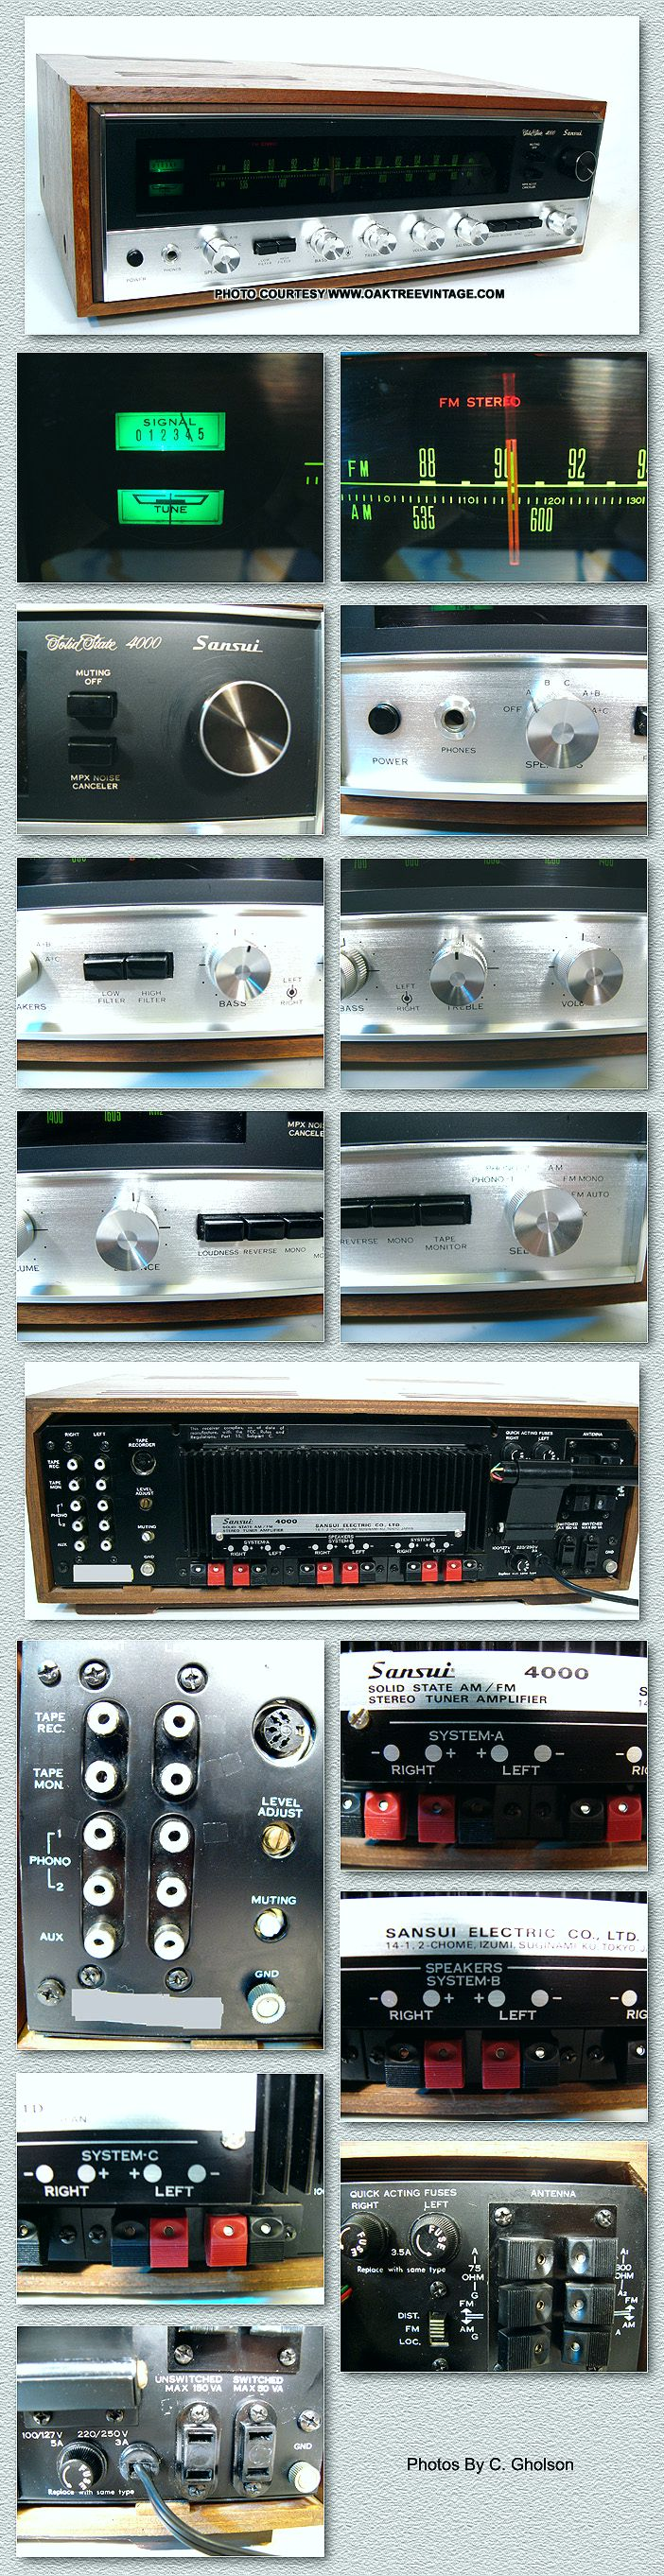 Vintage Sansui Stereo Parts Spares Circuit Board Buy Receiver Boardfm New Listing 4 16